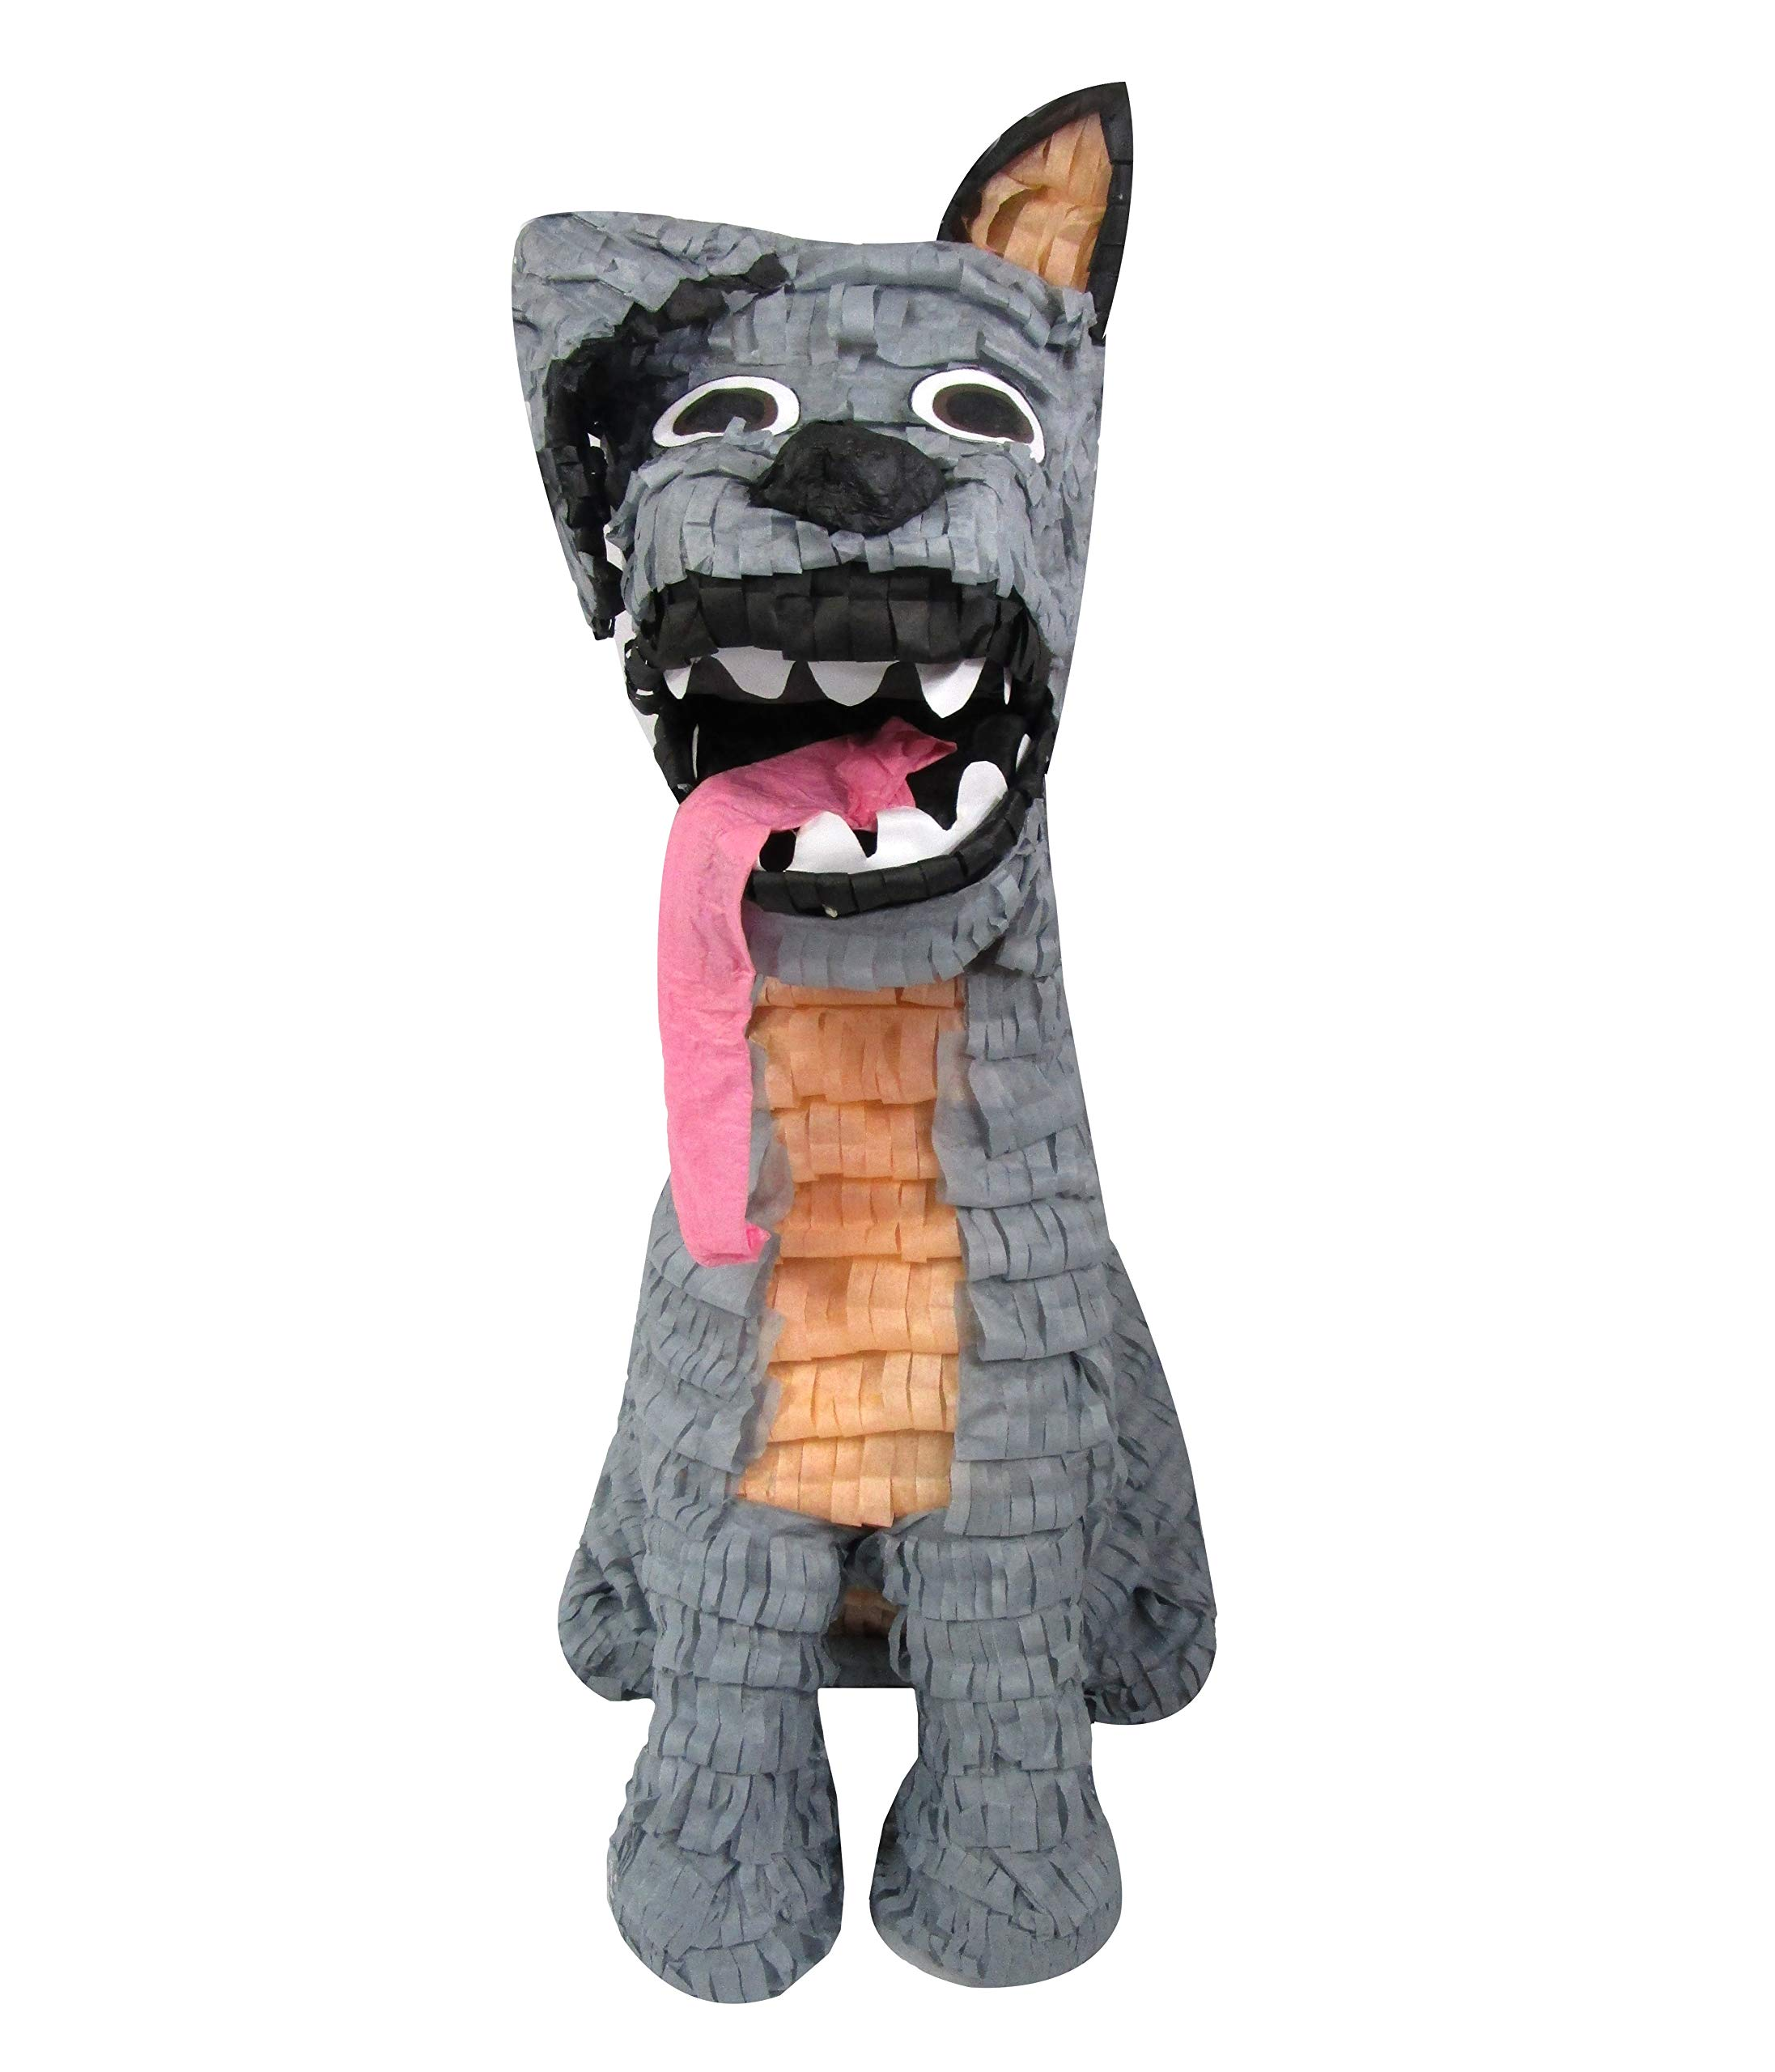 Spirited Dog Pinata, Party Game, Decoration and Photo Prop for Kids Birthdays or Day of The Dead